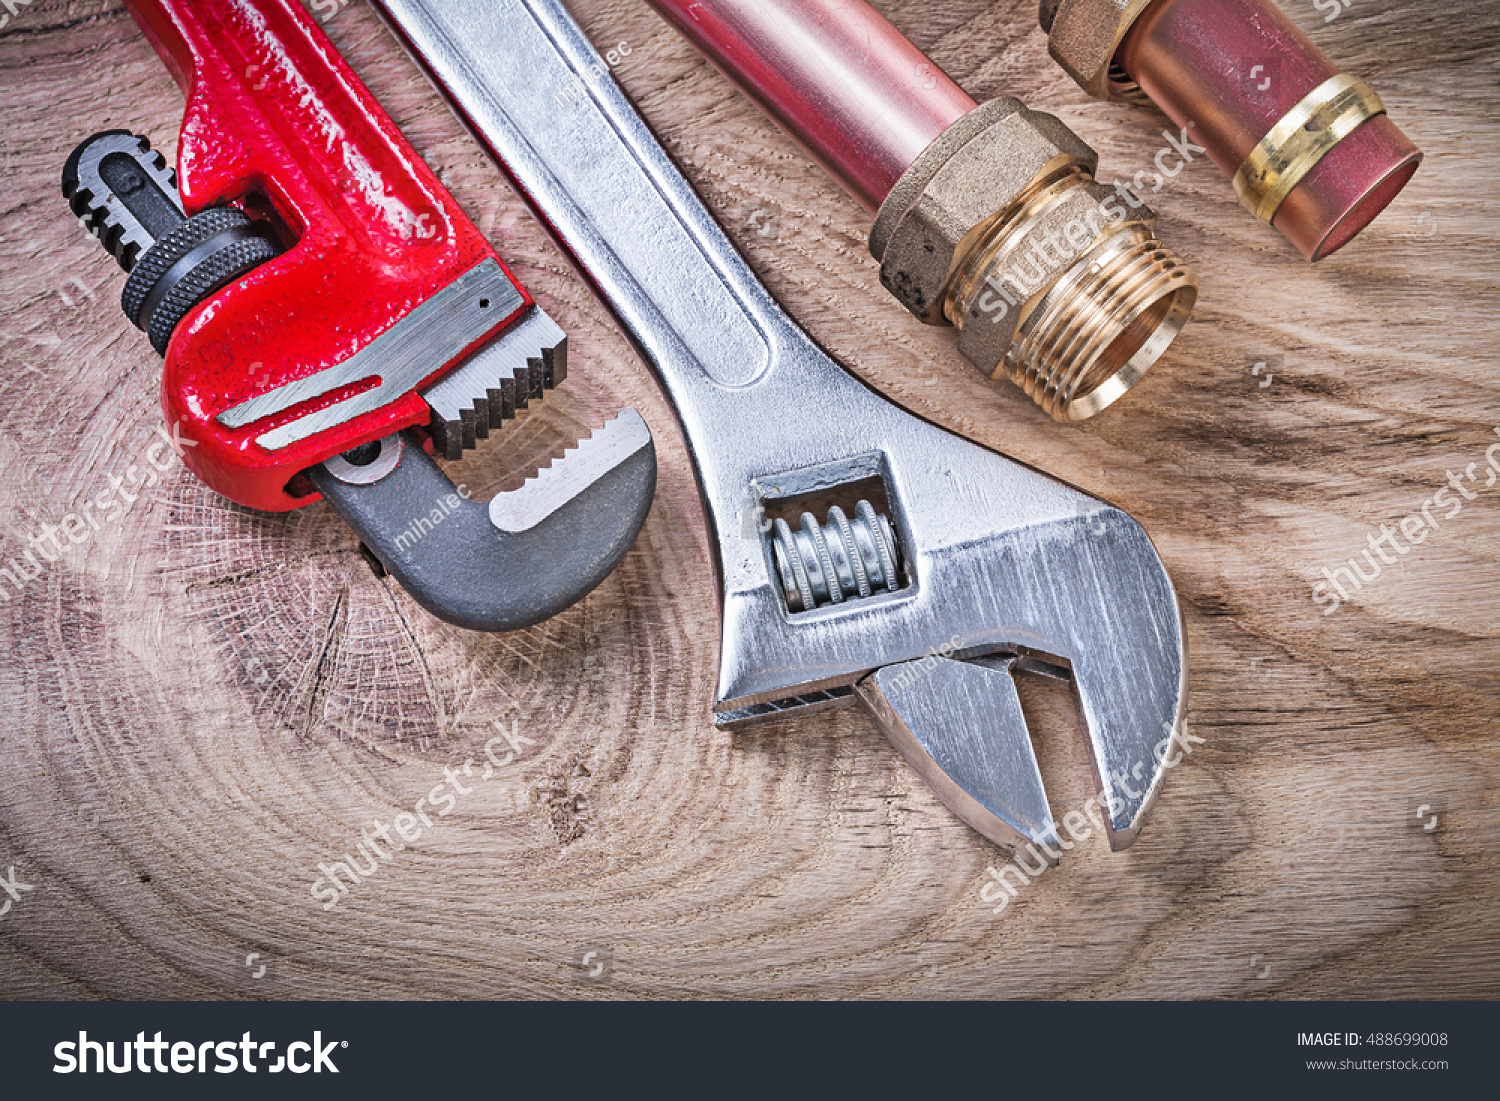 Copper Water Pipe Wrench Nipple Hose Stock Photo 488699008 ...